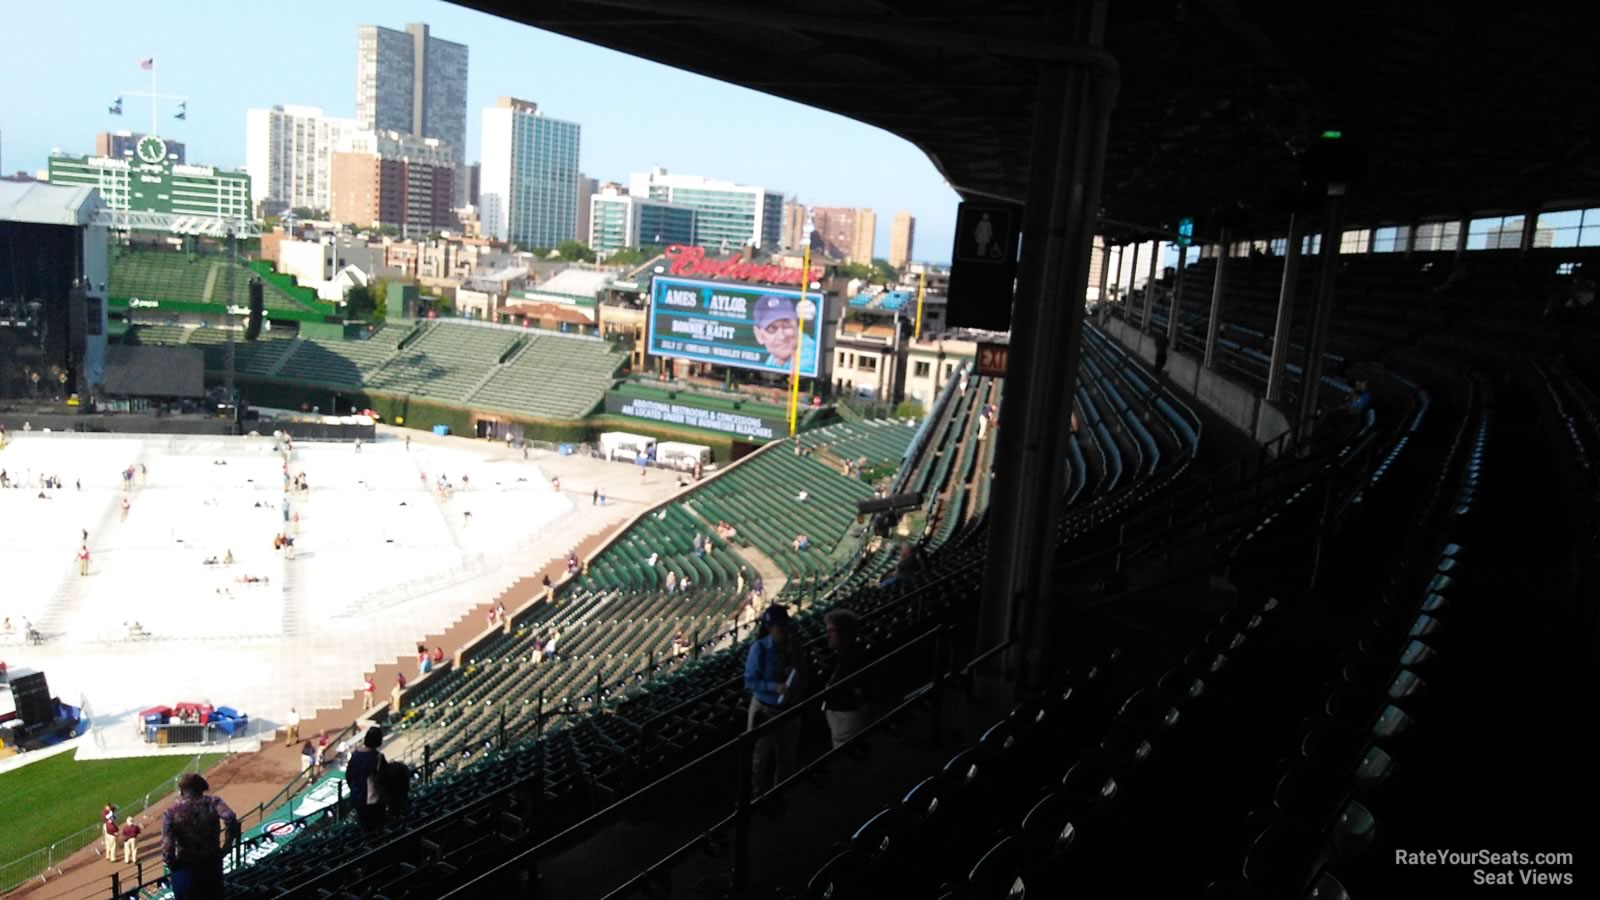 Wrigley Field Section 524 Concert Seating - RateYourSeats.com